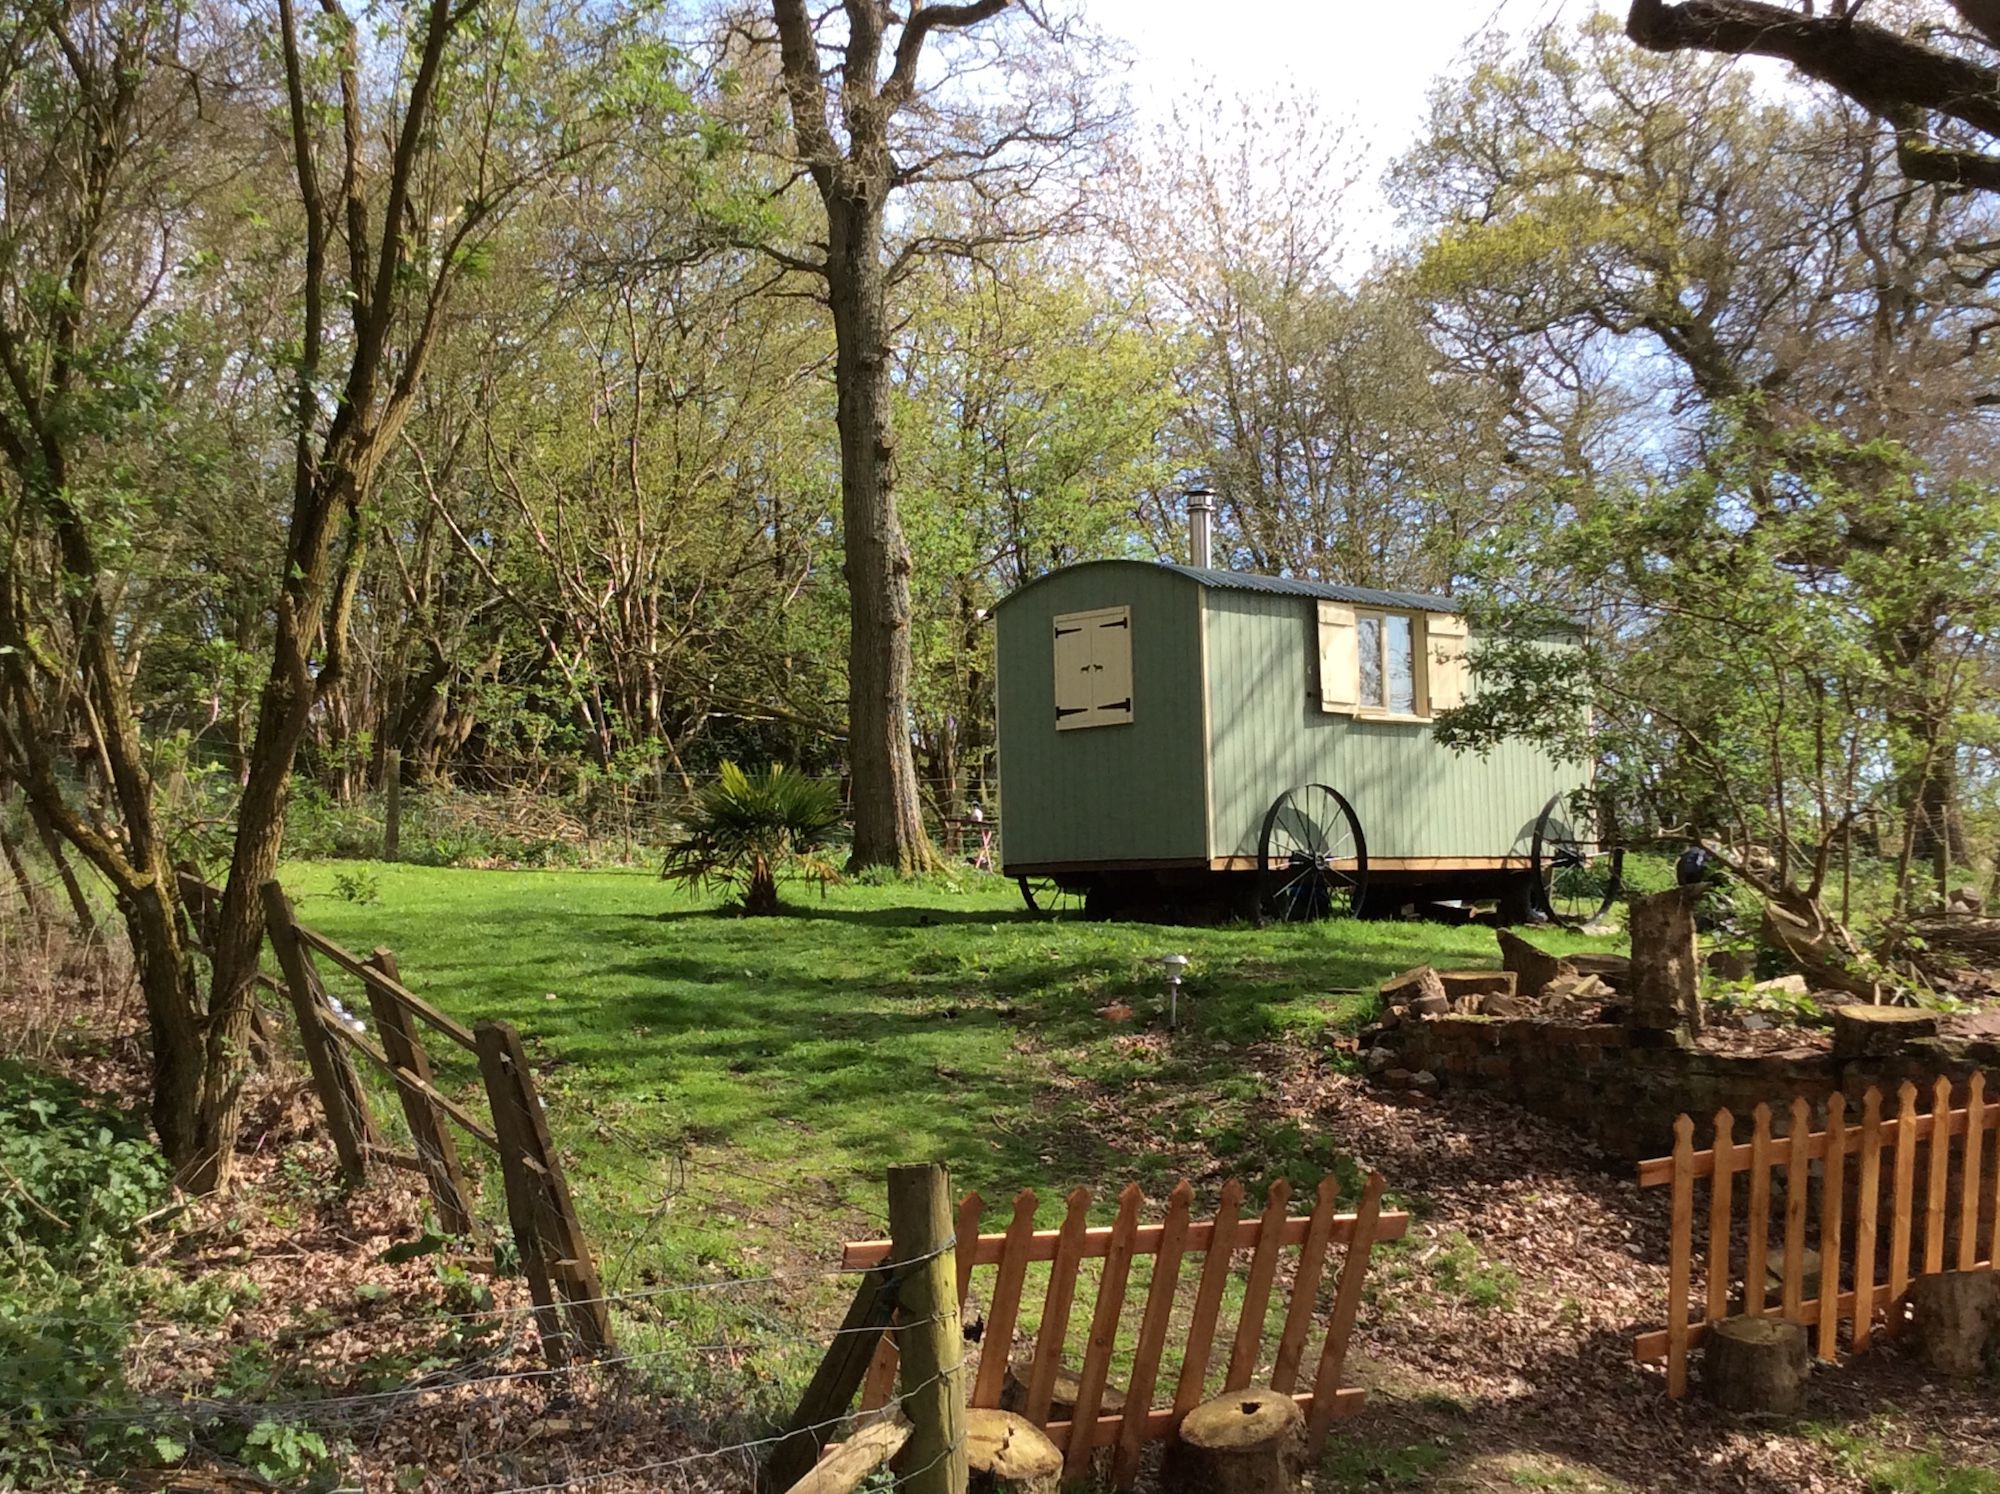 Glamping in West Sussex: A family-run site with cosy shepherd's huts, all with a superb location on the South Downs Way.